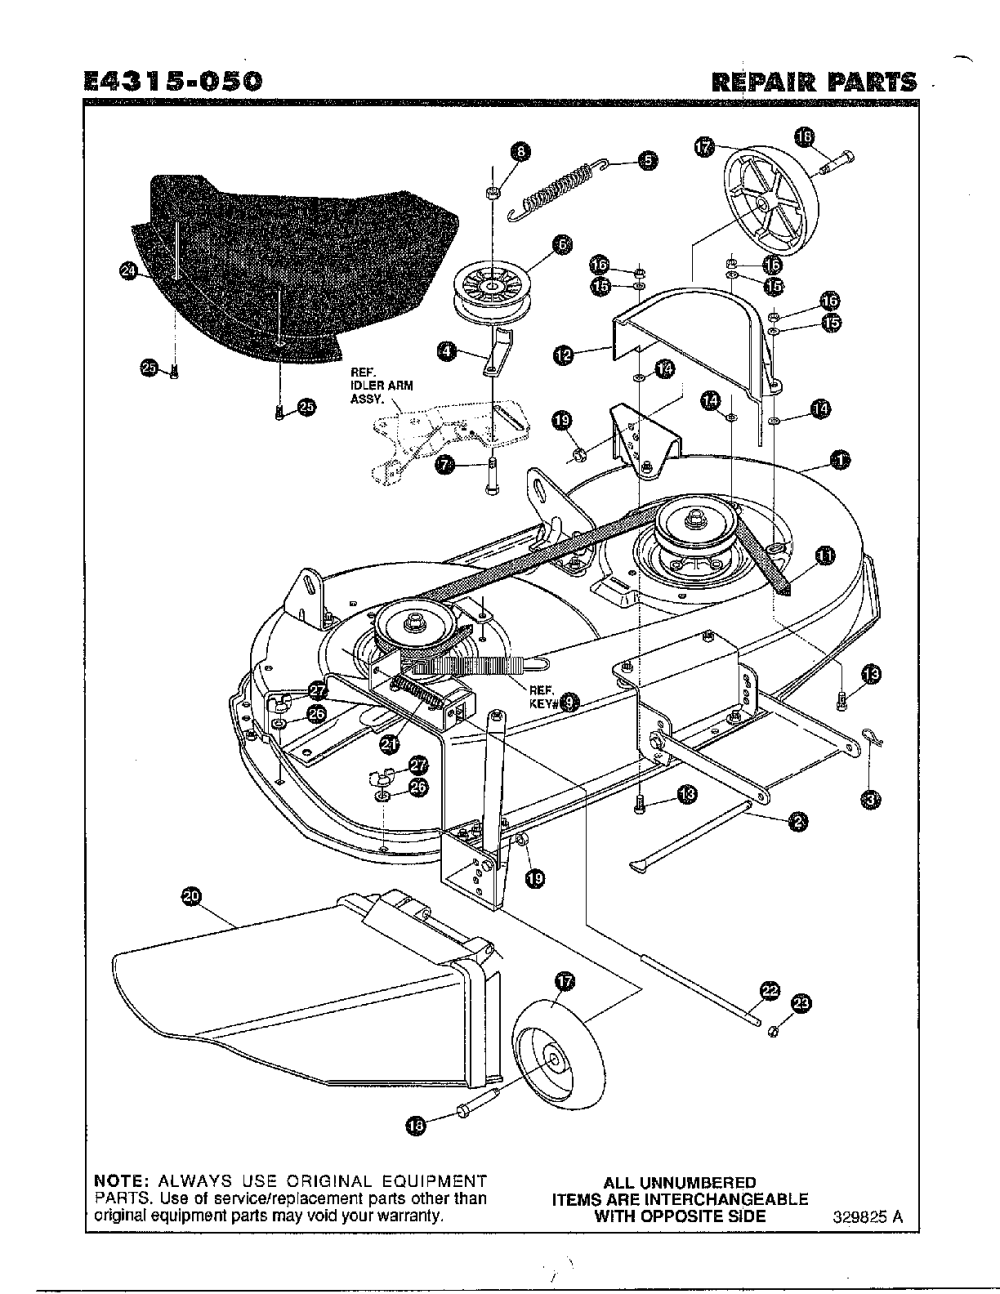 medium resolution of john deere lawn tractor wiring diagram for scott wiring diagram for ford tractor wiring diagram scott s lawn mower parts search scott s lawn mower parts